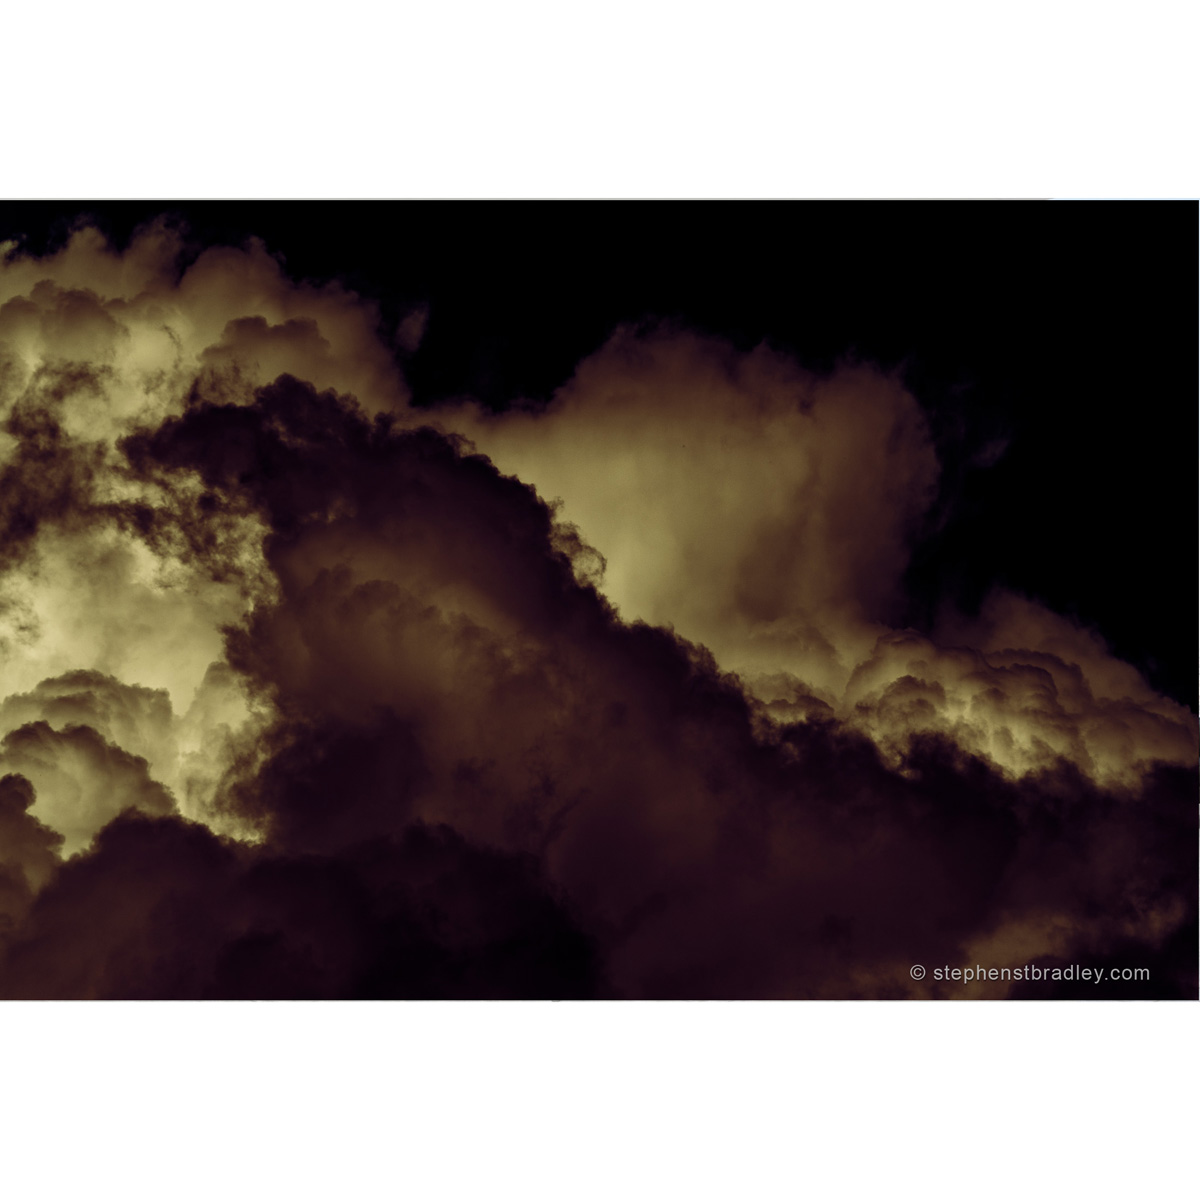 Rebirthed - limited edition photo of clouds over Glencorp, County Antrim for sale by Bout Yeh art gallery Belfast and Dublin Ireland